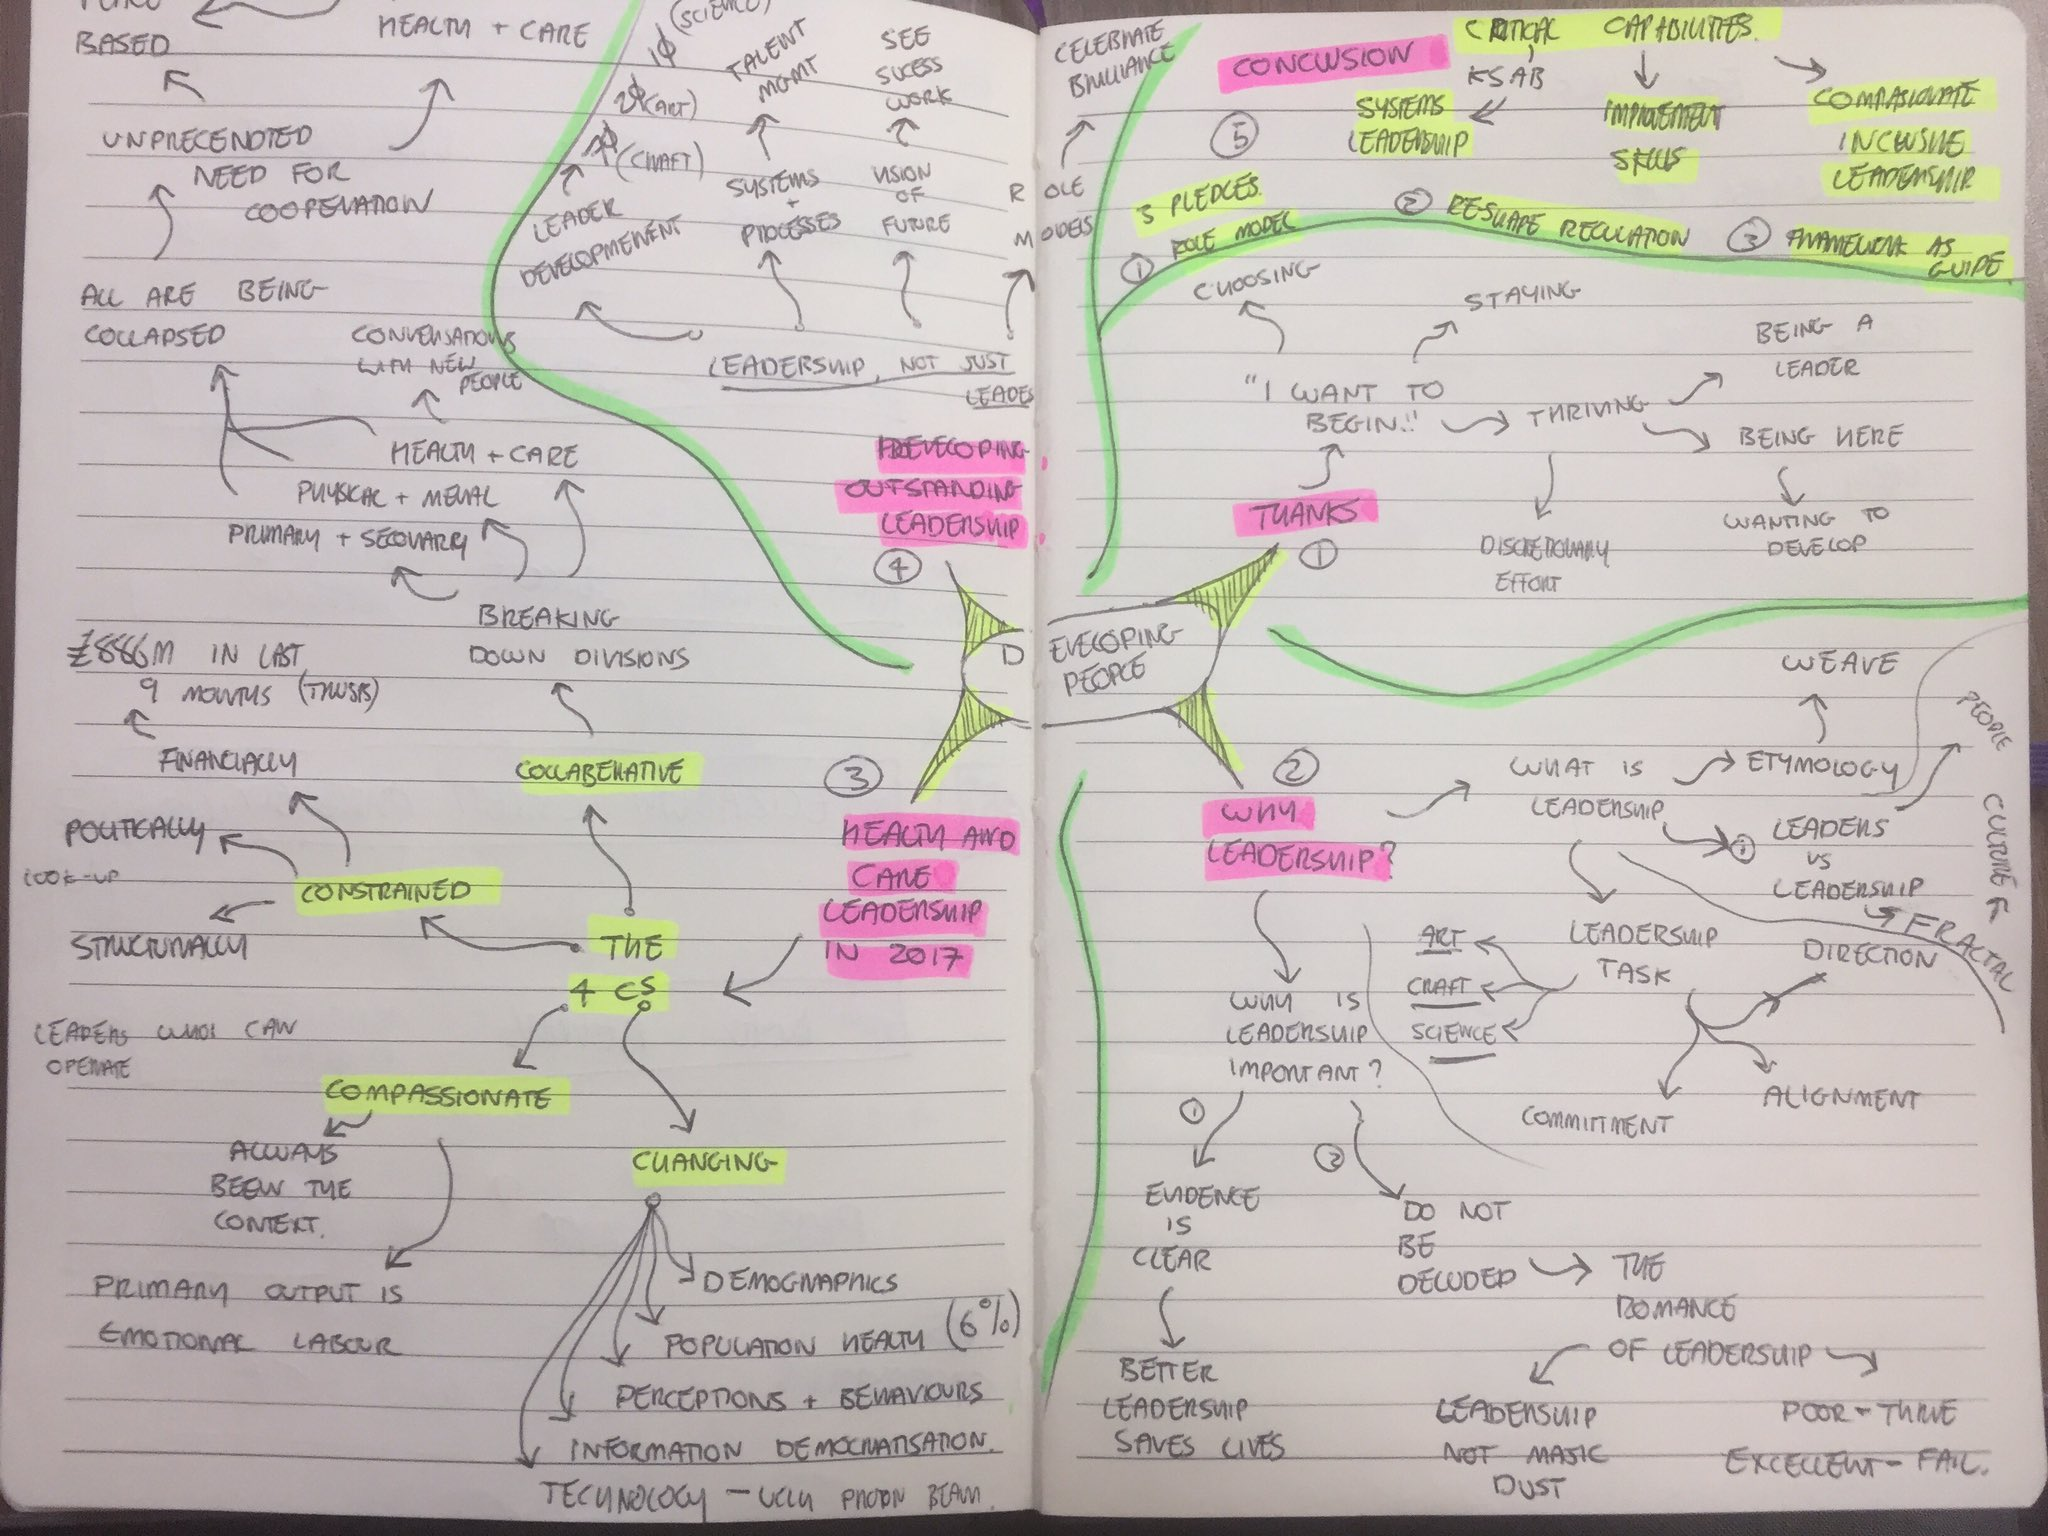 I've been privileged to speak at the #KSSAwards2017 #tvwawards #nhslla this week. Here is the mind map I used: https://t.co/NdKRb4Fmma